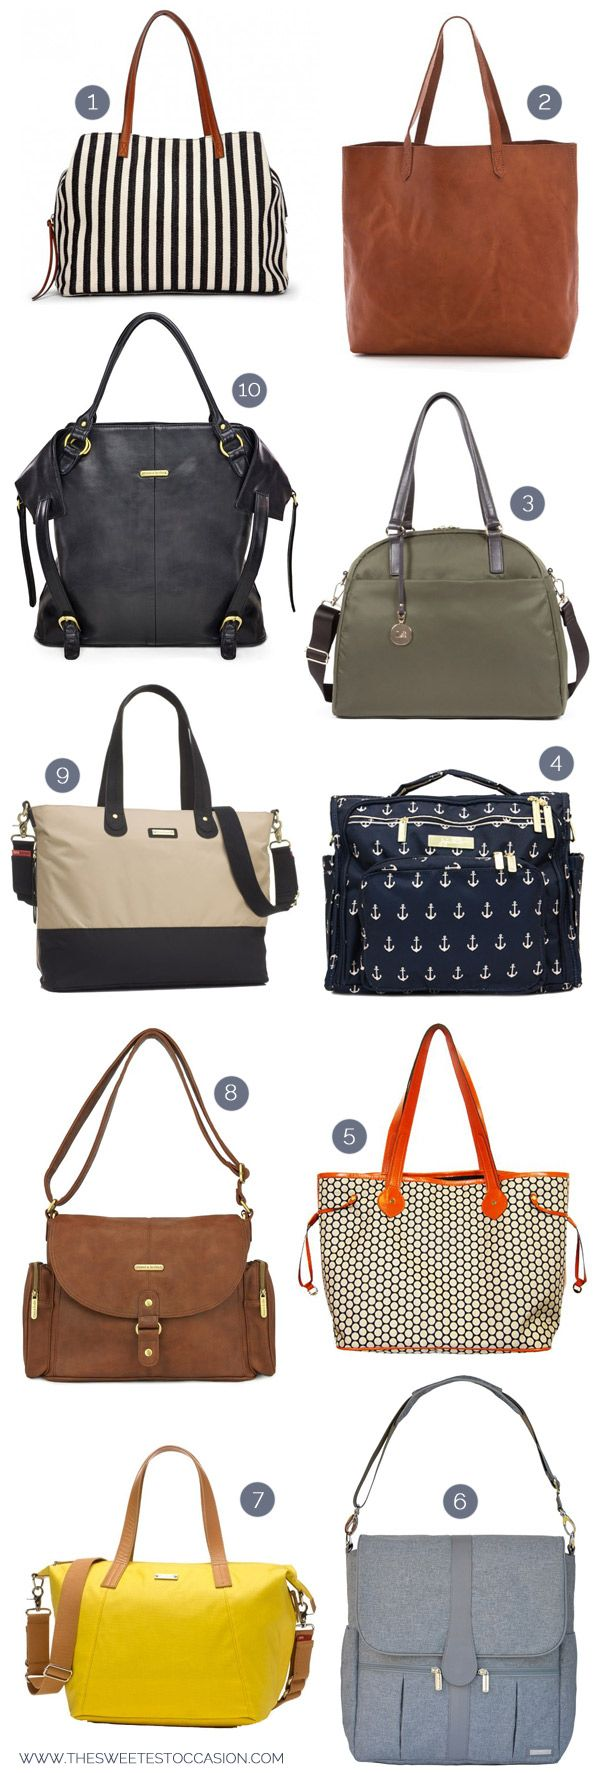 10 Super Stylish Diaper Bags by @cydconverse